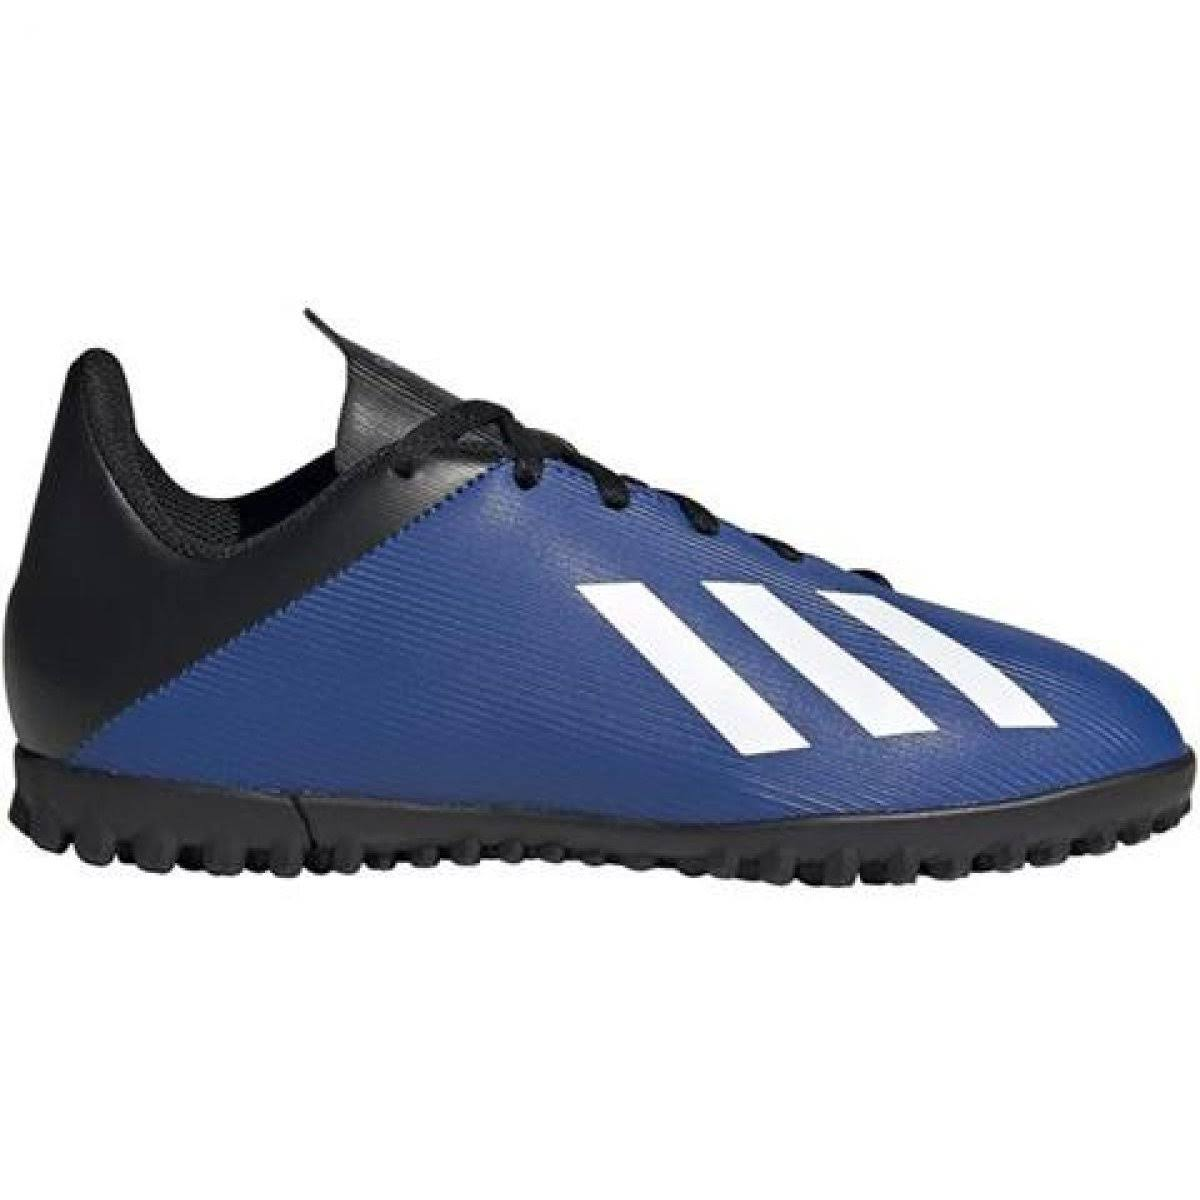 Adidas Junior x 19.4 Astro Turf Football Boot, Blue, Size 5